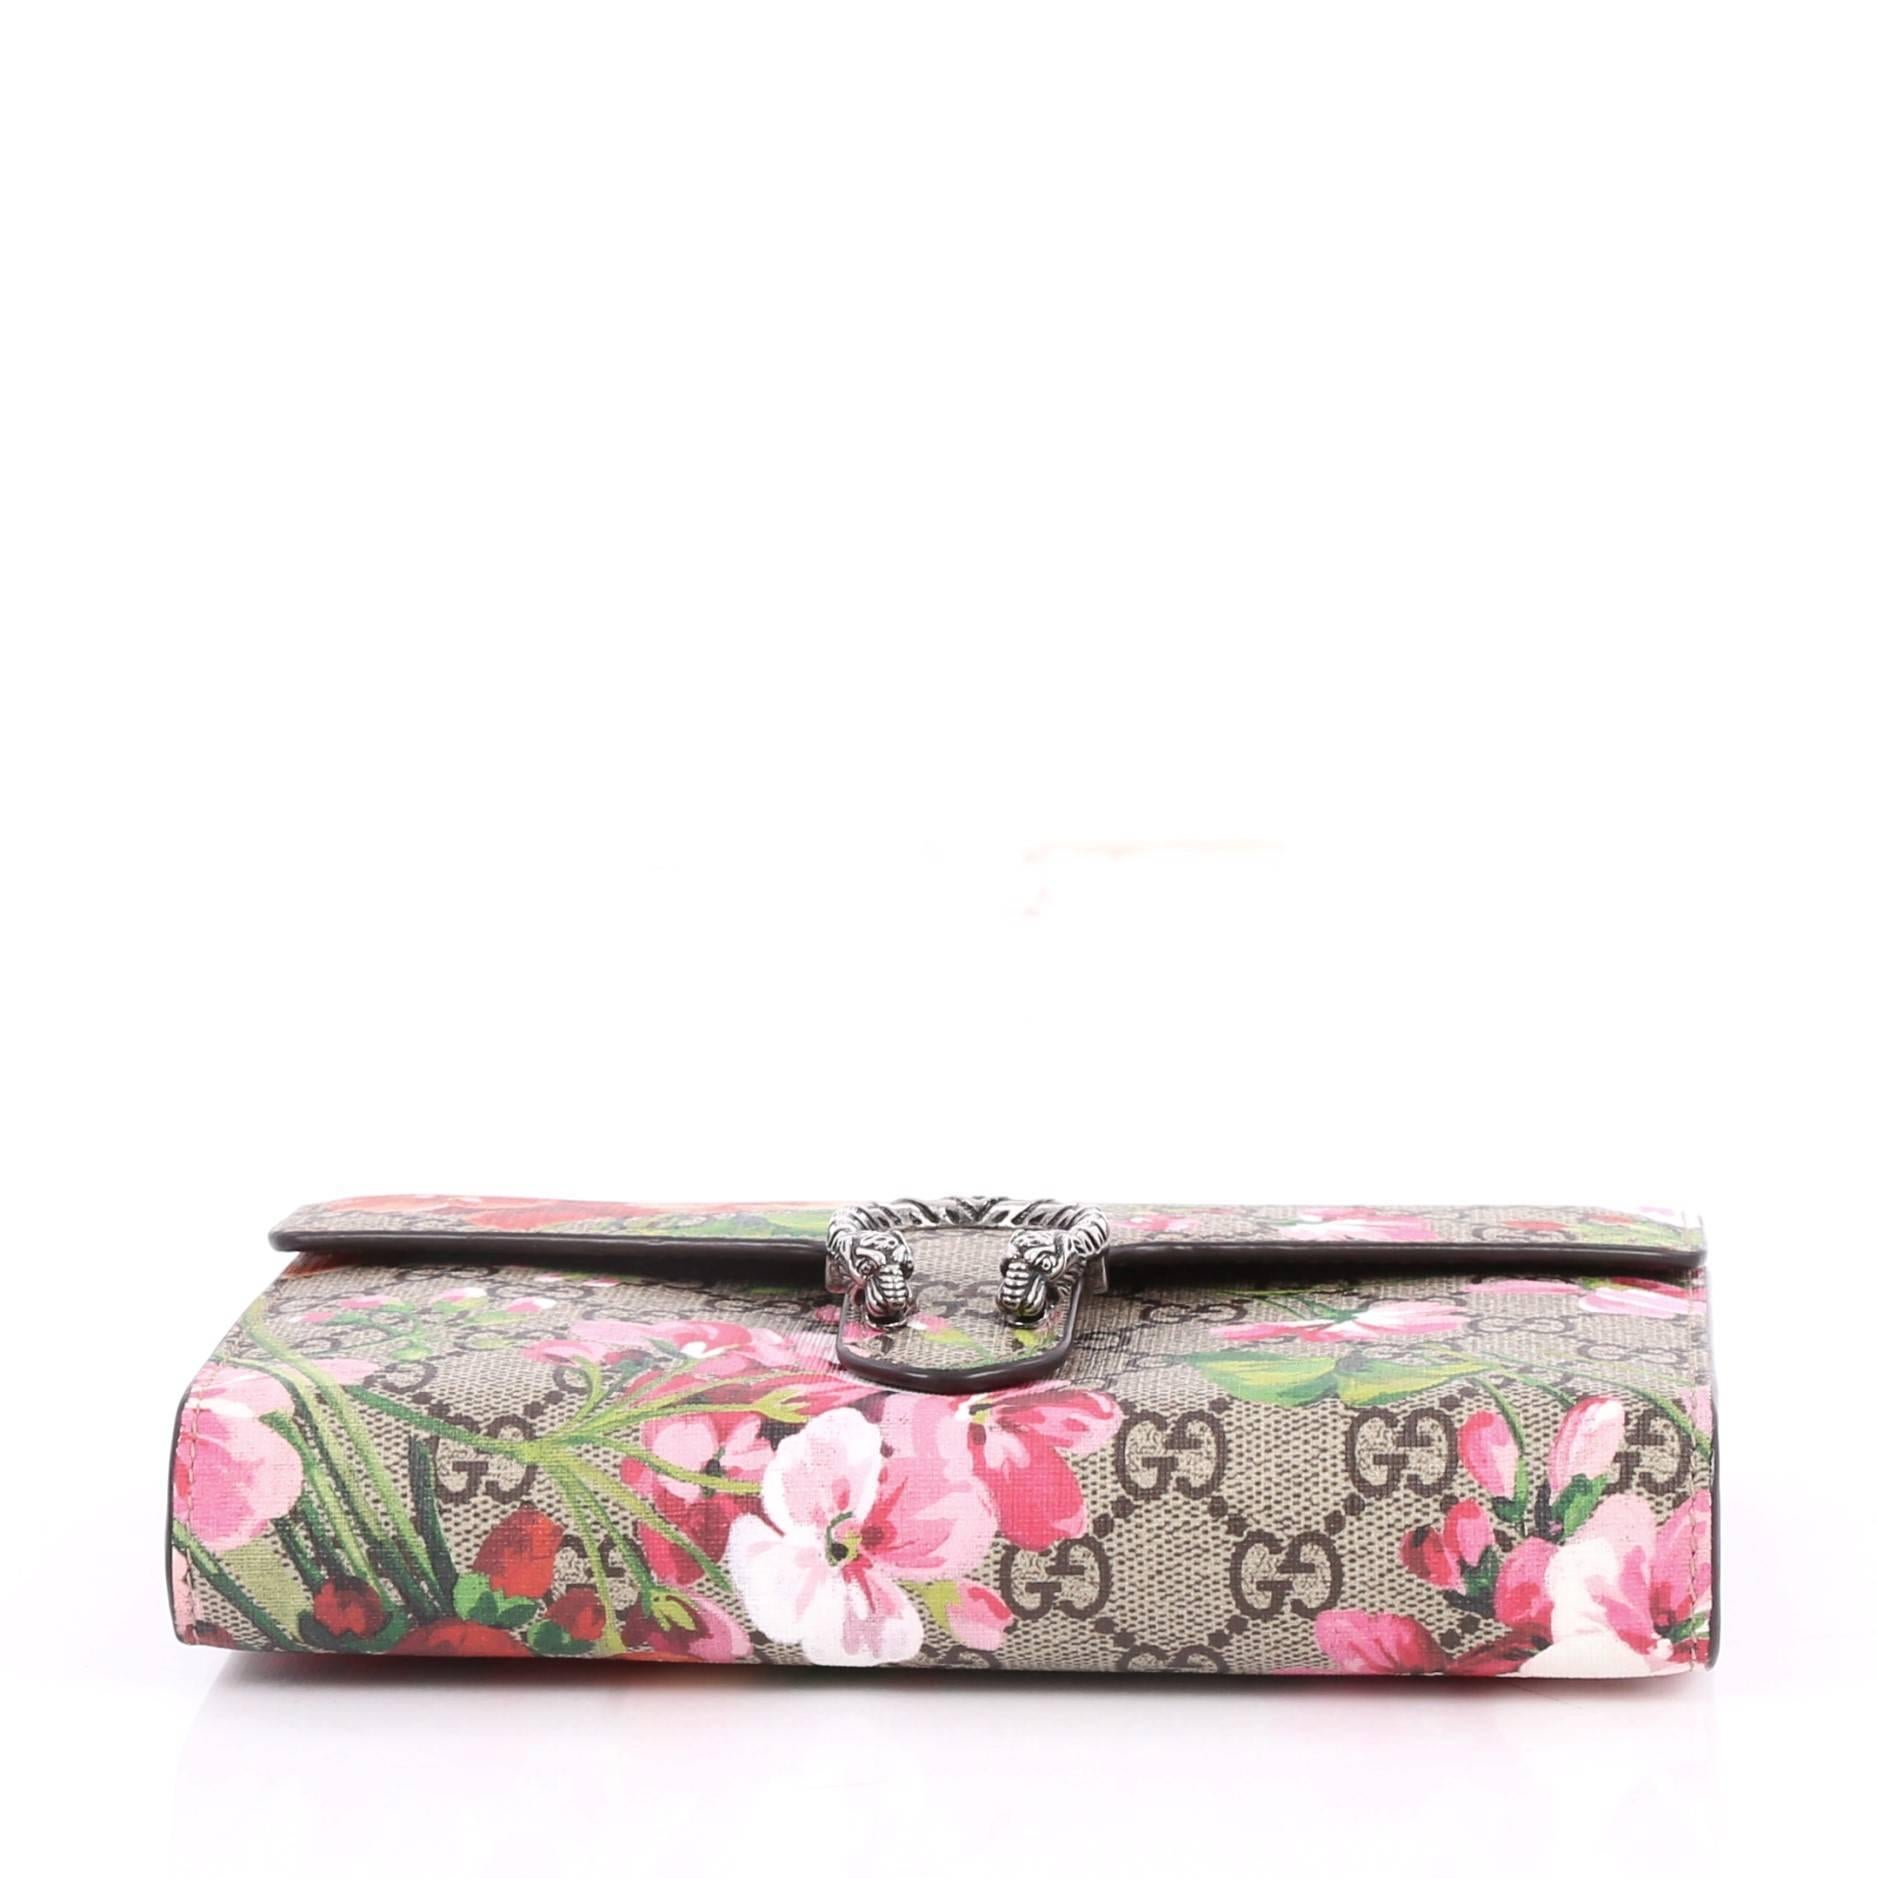 a46e7f31386 Gucci Dionysus Chain Wallet Blooms Print GG Coated Canvas Small at 1stdibs .